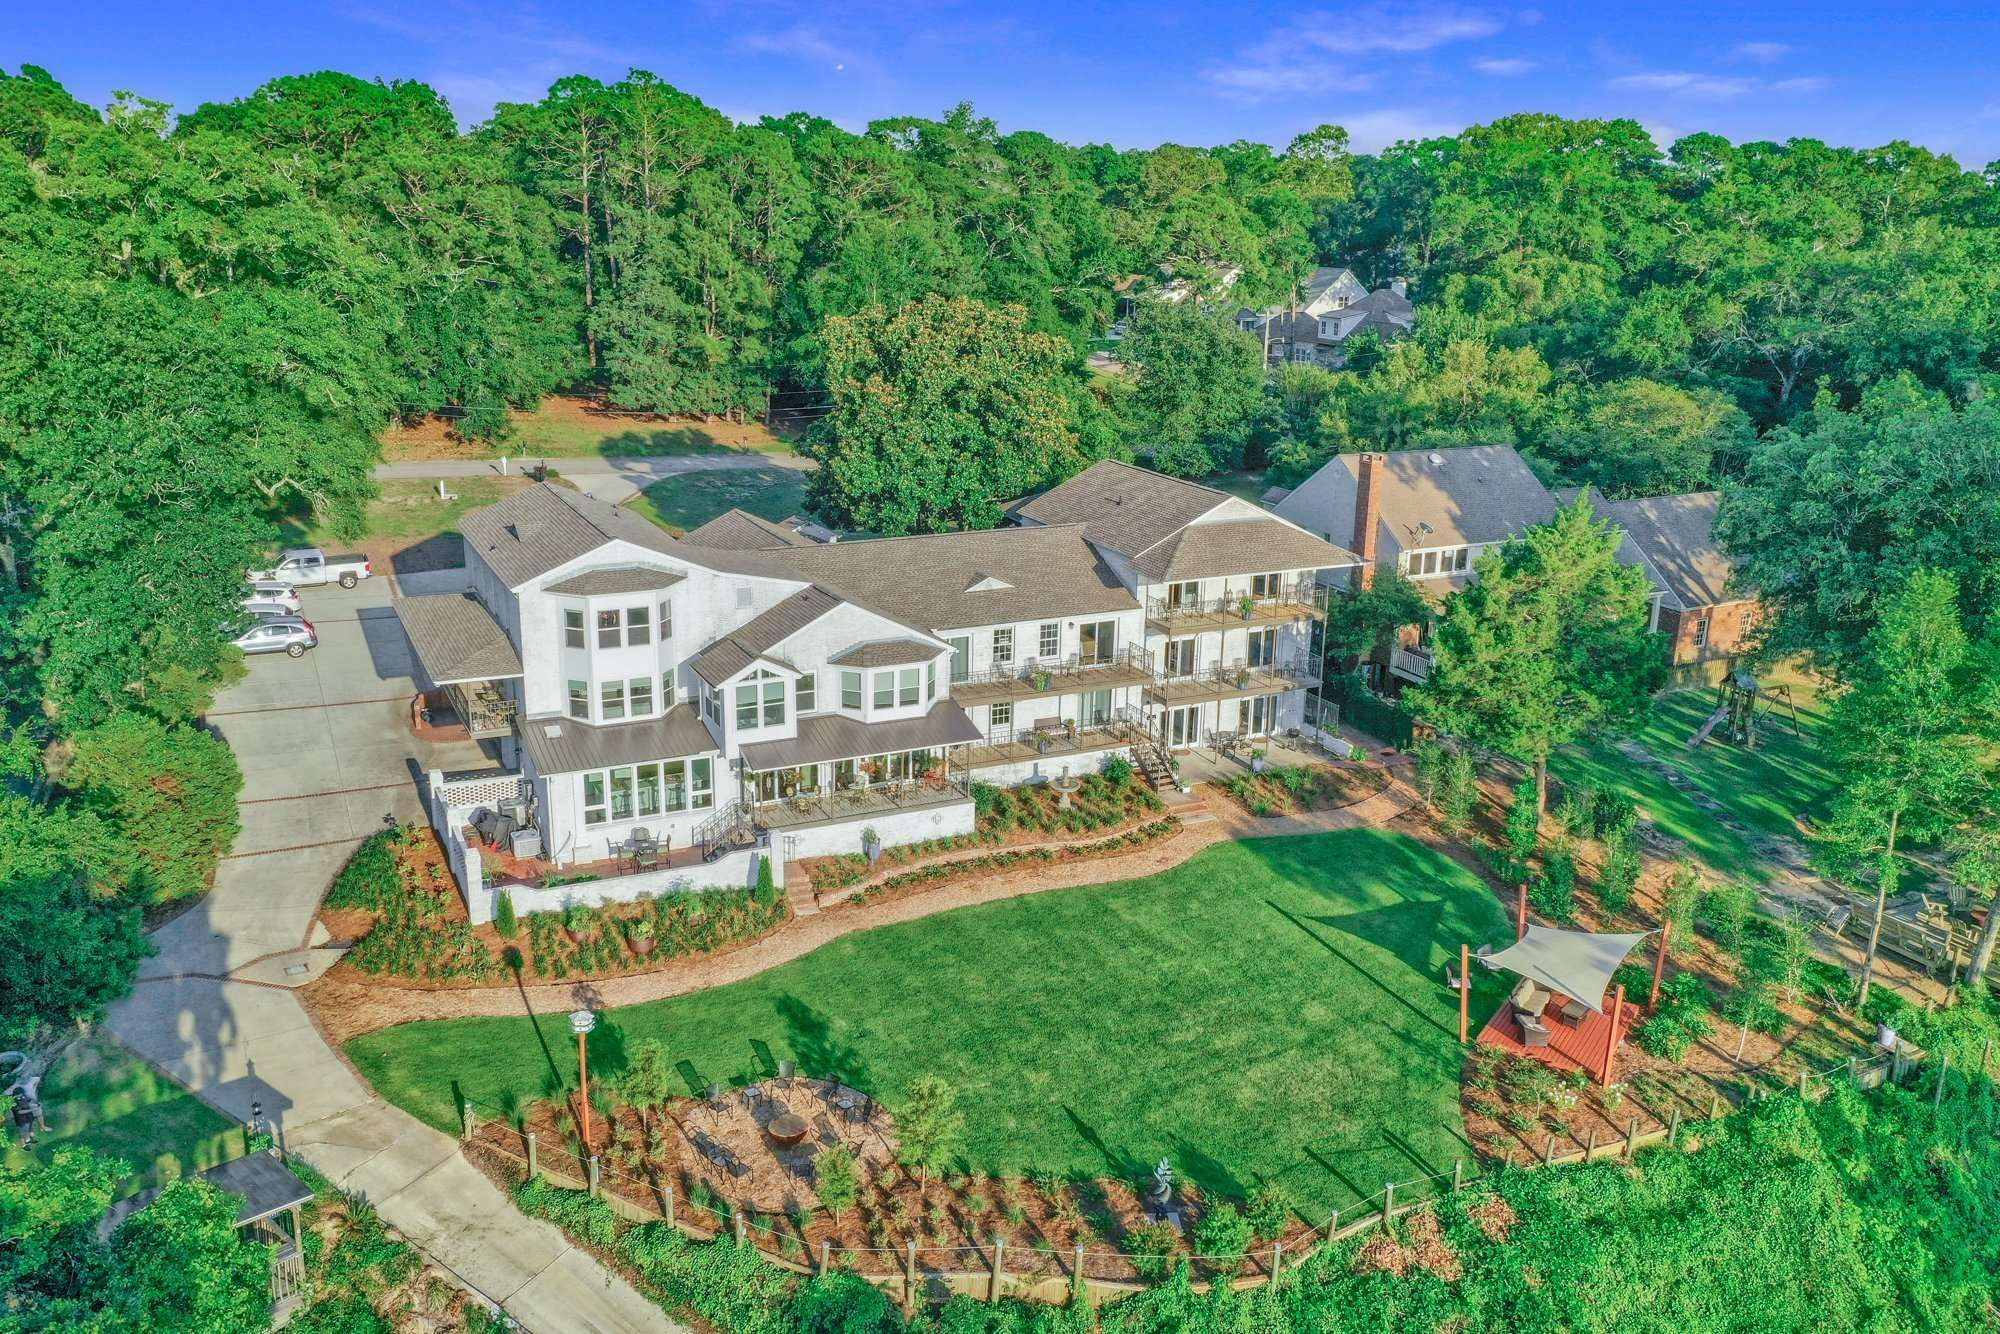 Jubilee Suites in Fairhope, AL Aerial